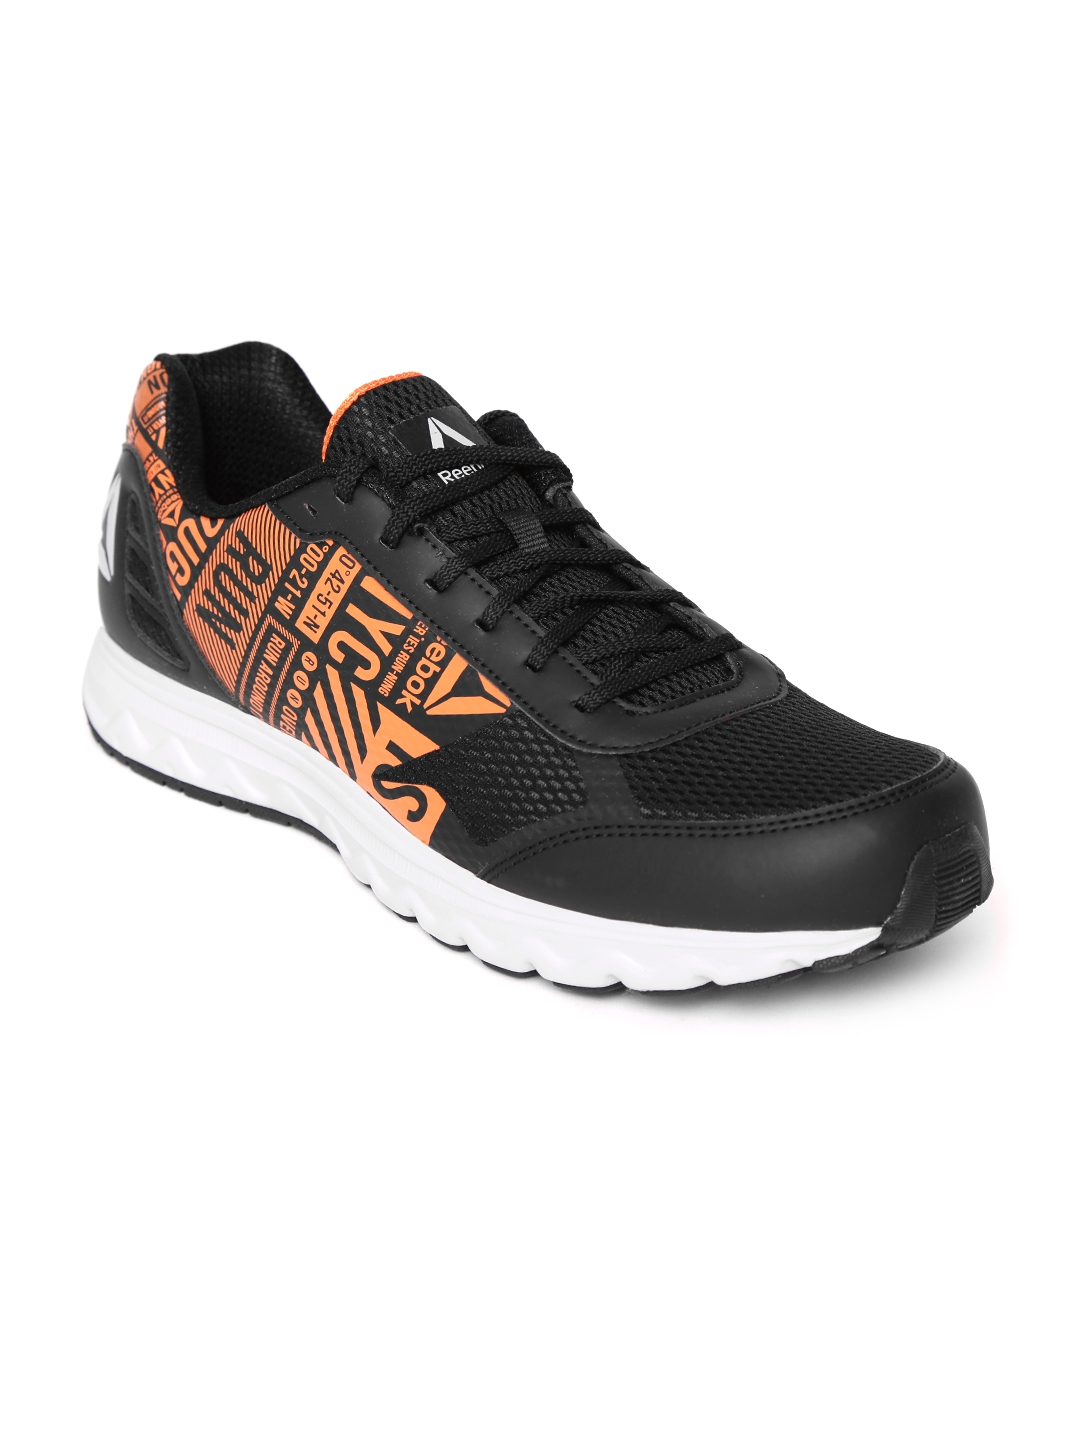 Buy Reebok Men Black Voyager Xtreme Running Shoes - Sports Shoes for ... 468190c49